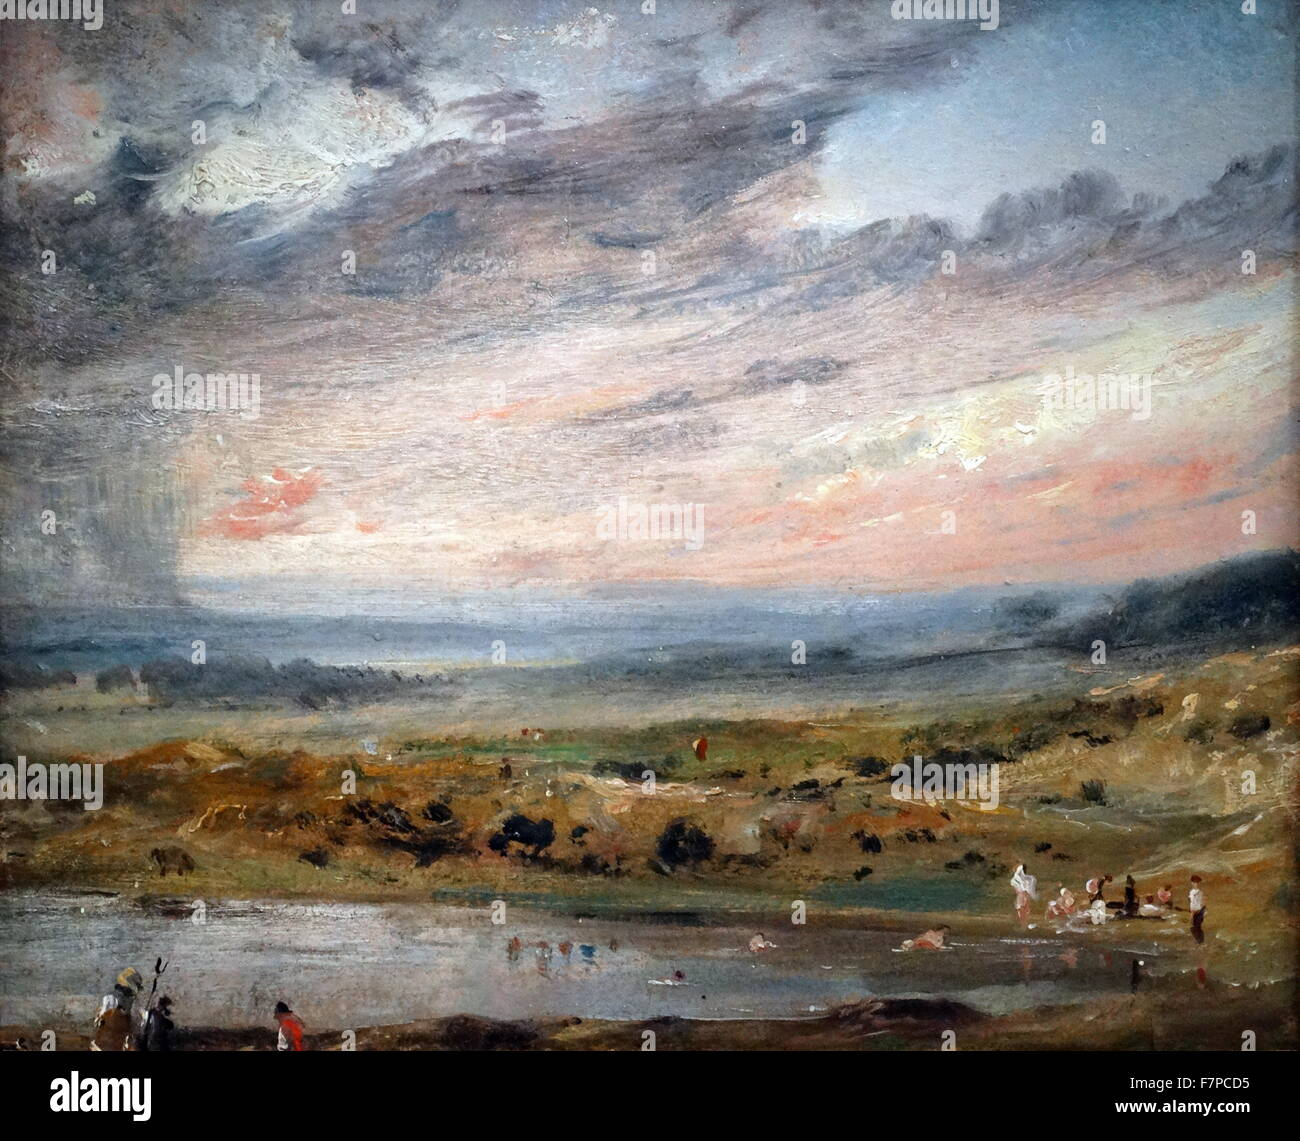 Painting by John Constable (1776-1837) English Romantic painter. Dated 19th Century Stock Photo